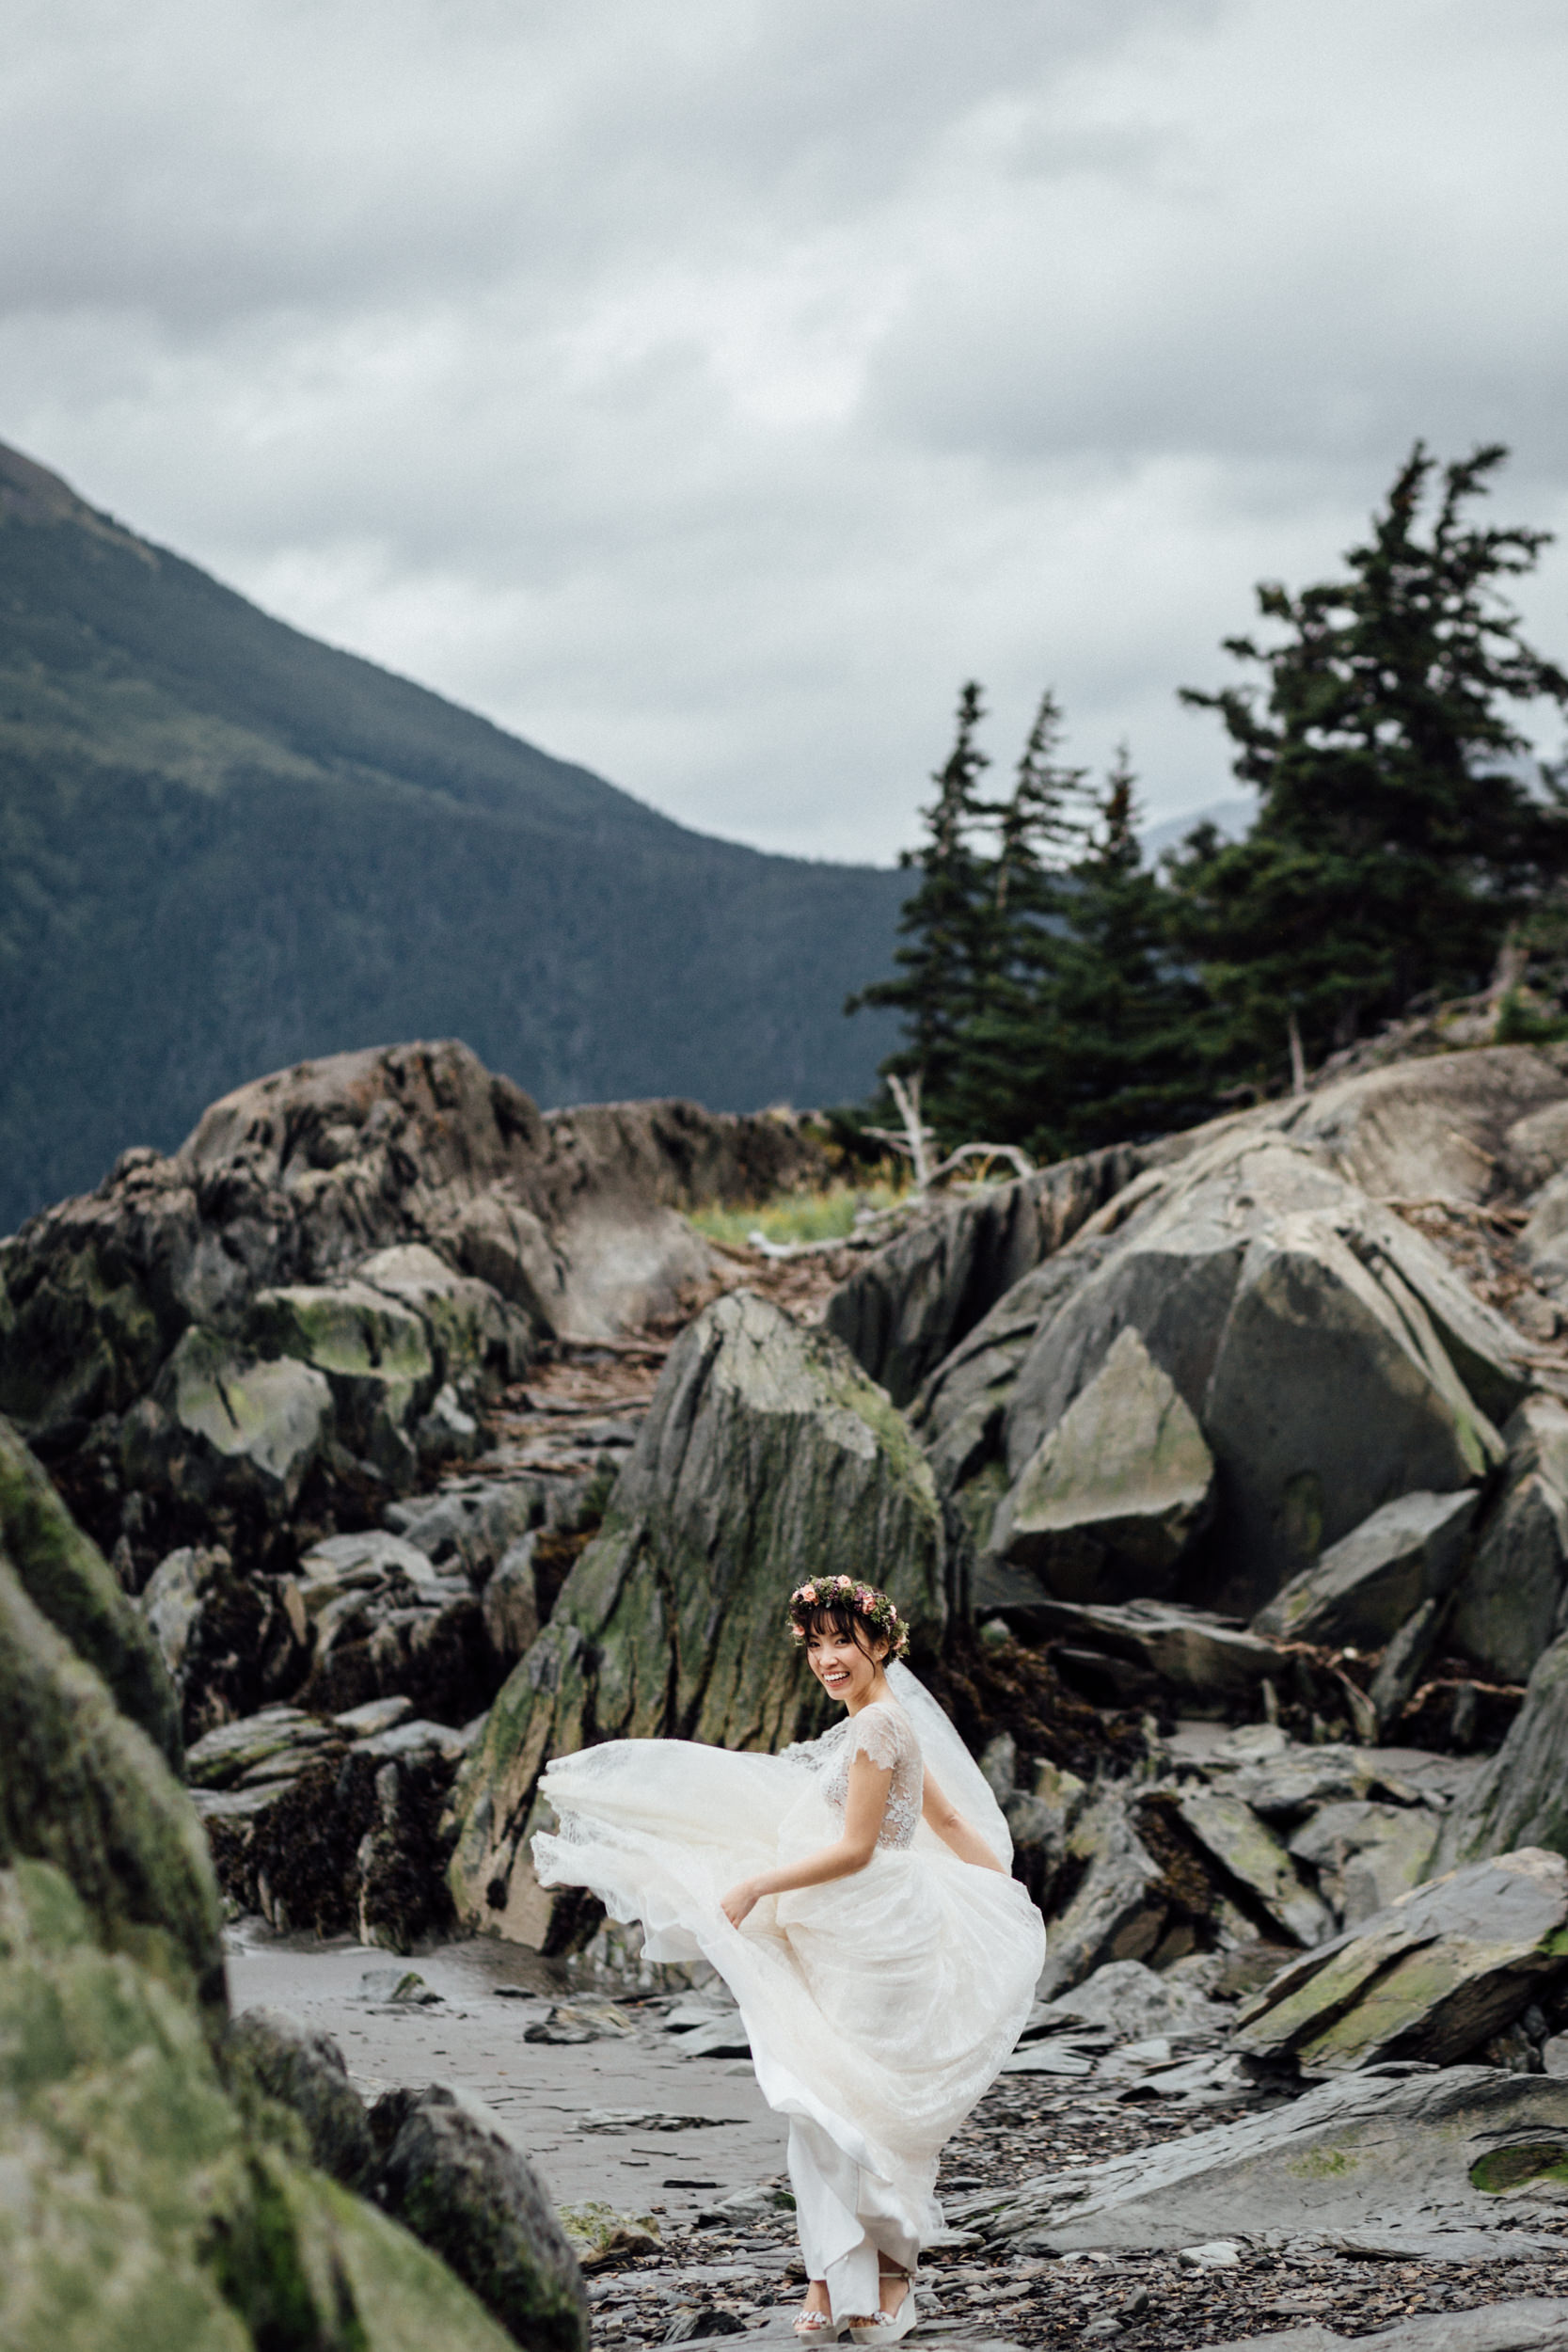 Bride twirling dress on rocky Alaskan beach